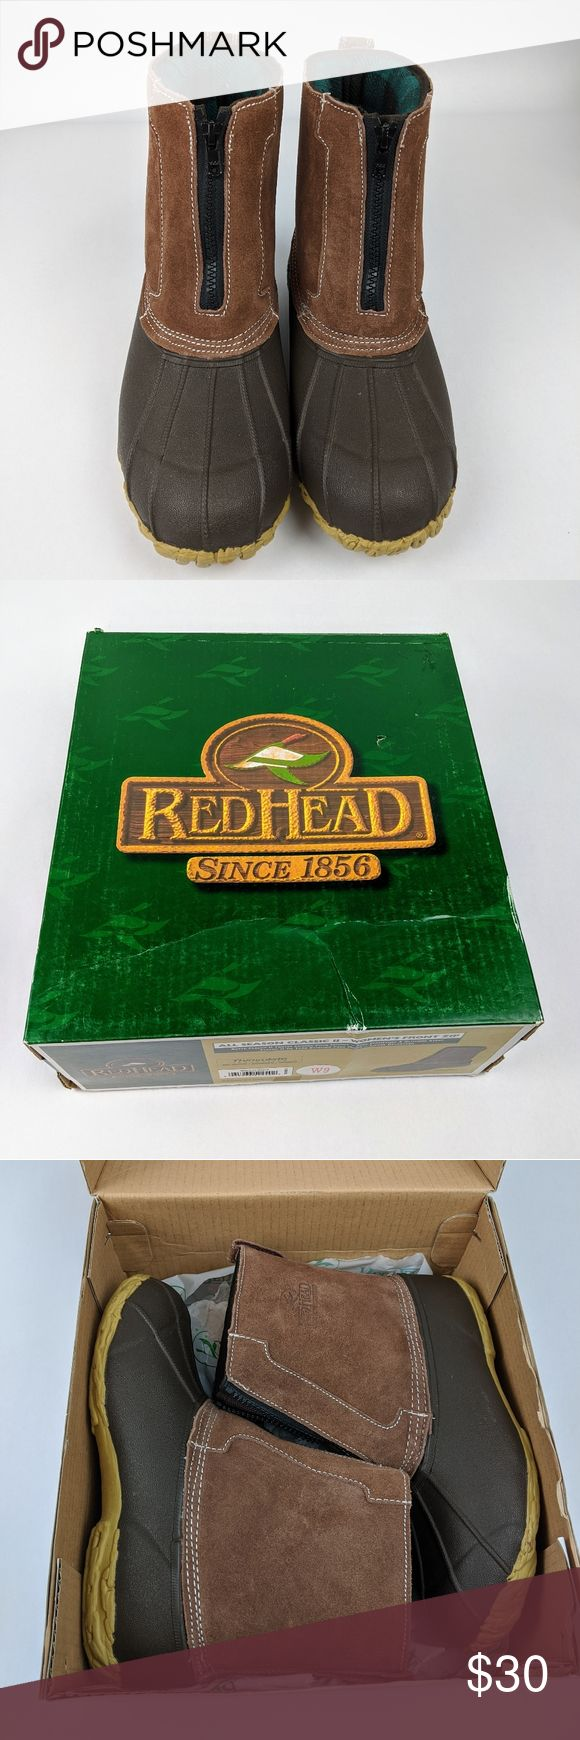 ladies Redhead insulated for guide boots